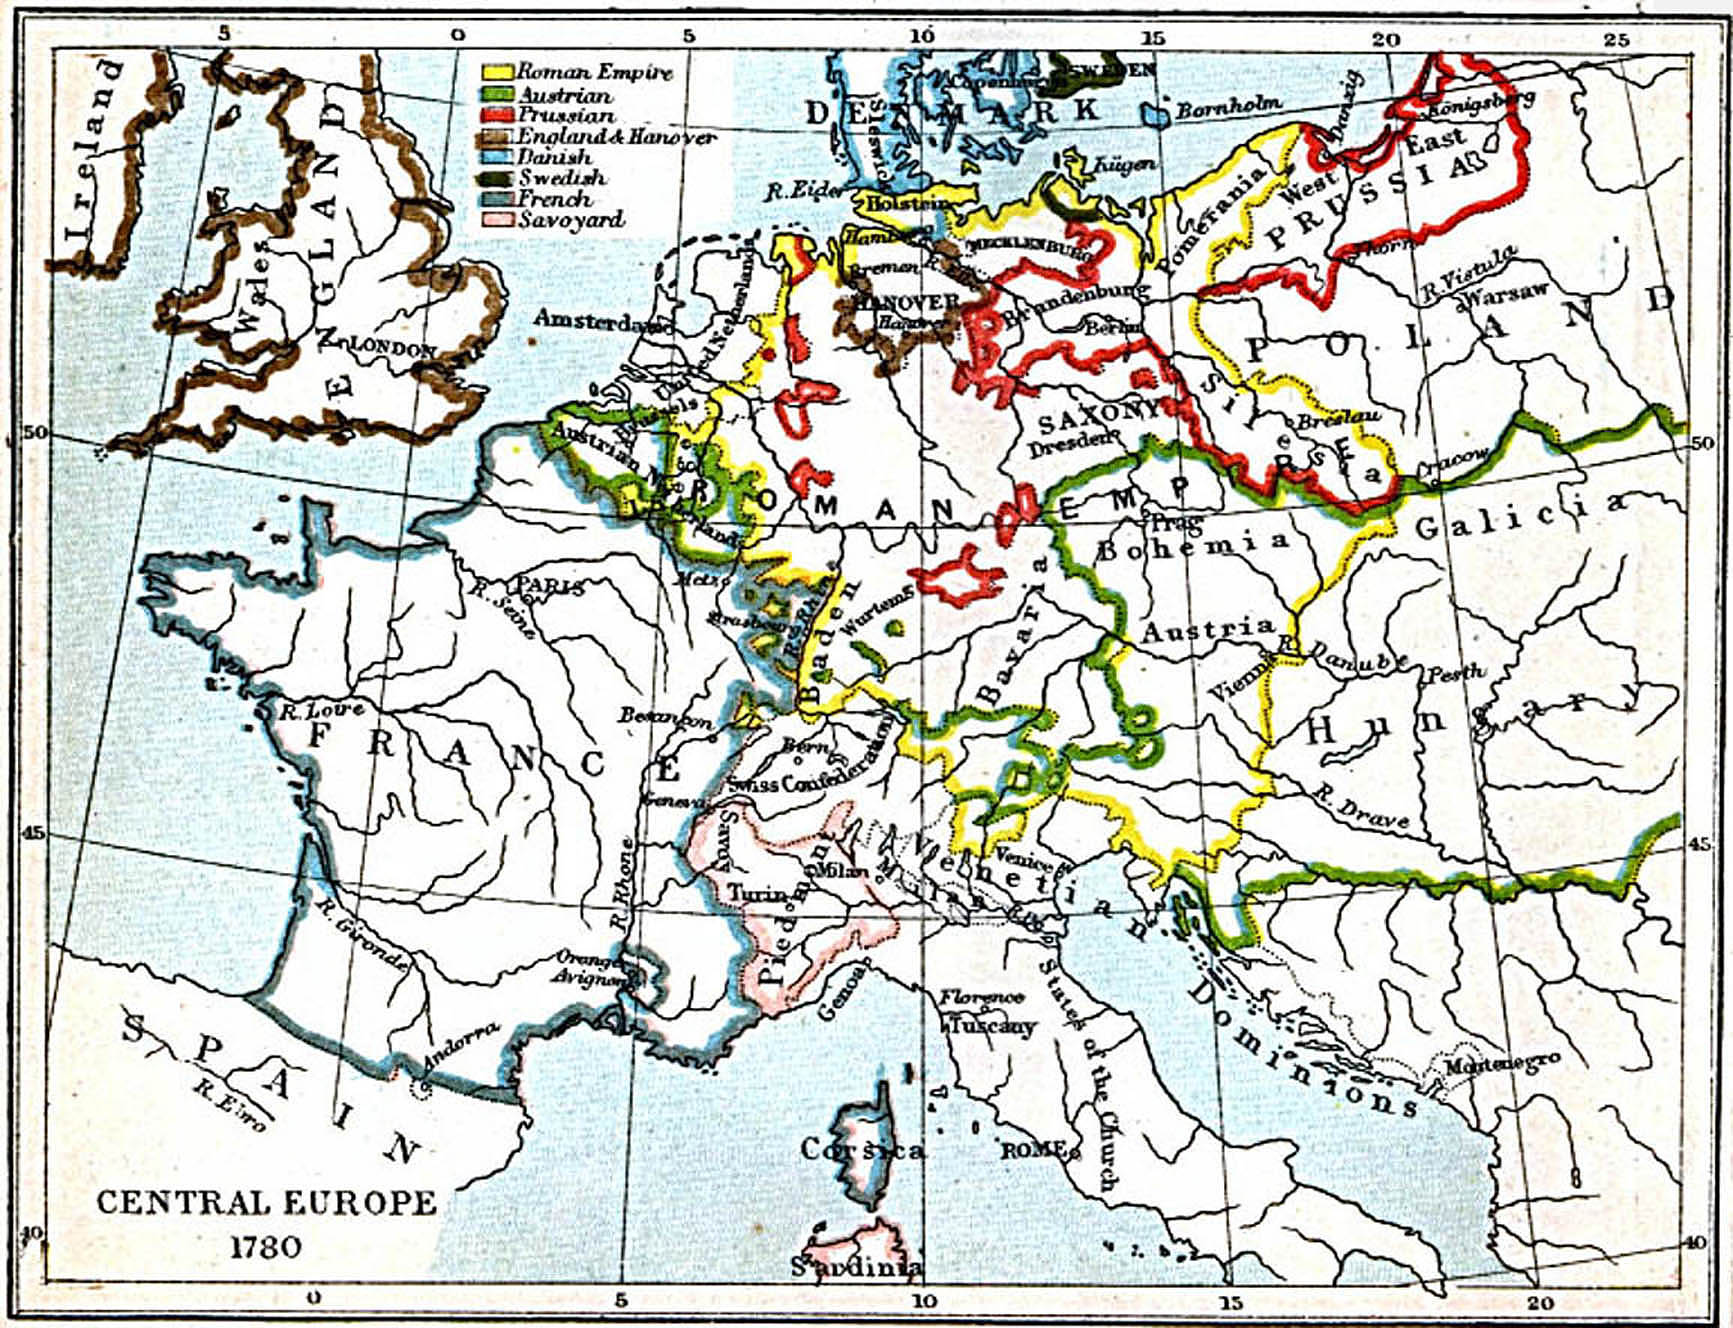 Texas Vs Europe Map.Maps Of Central Europe 980 A D 1871 A D Perry Castaneda Map